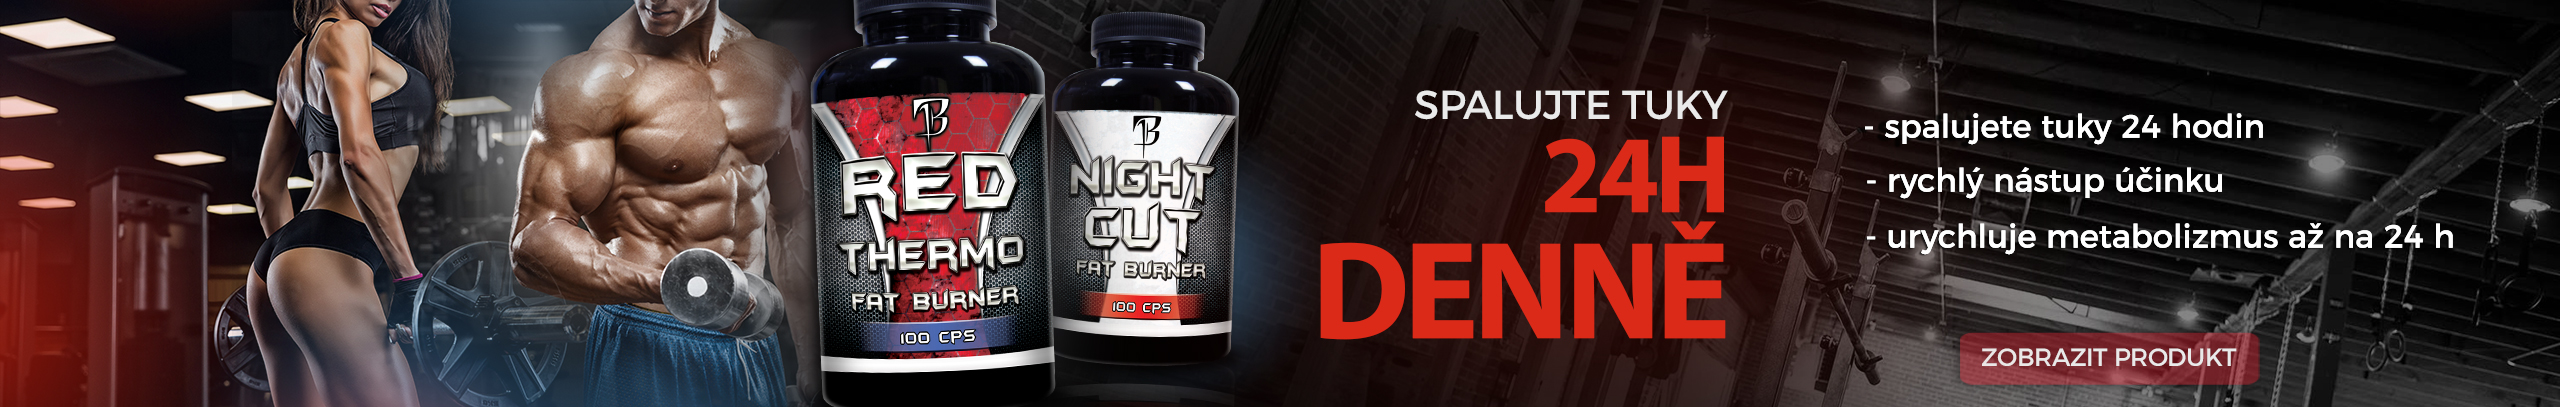 RED Thermo + Night Cut od BODYFLEX Nutrition